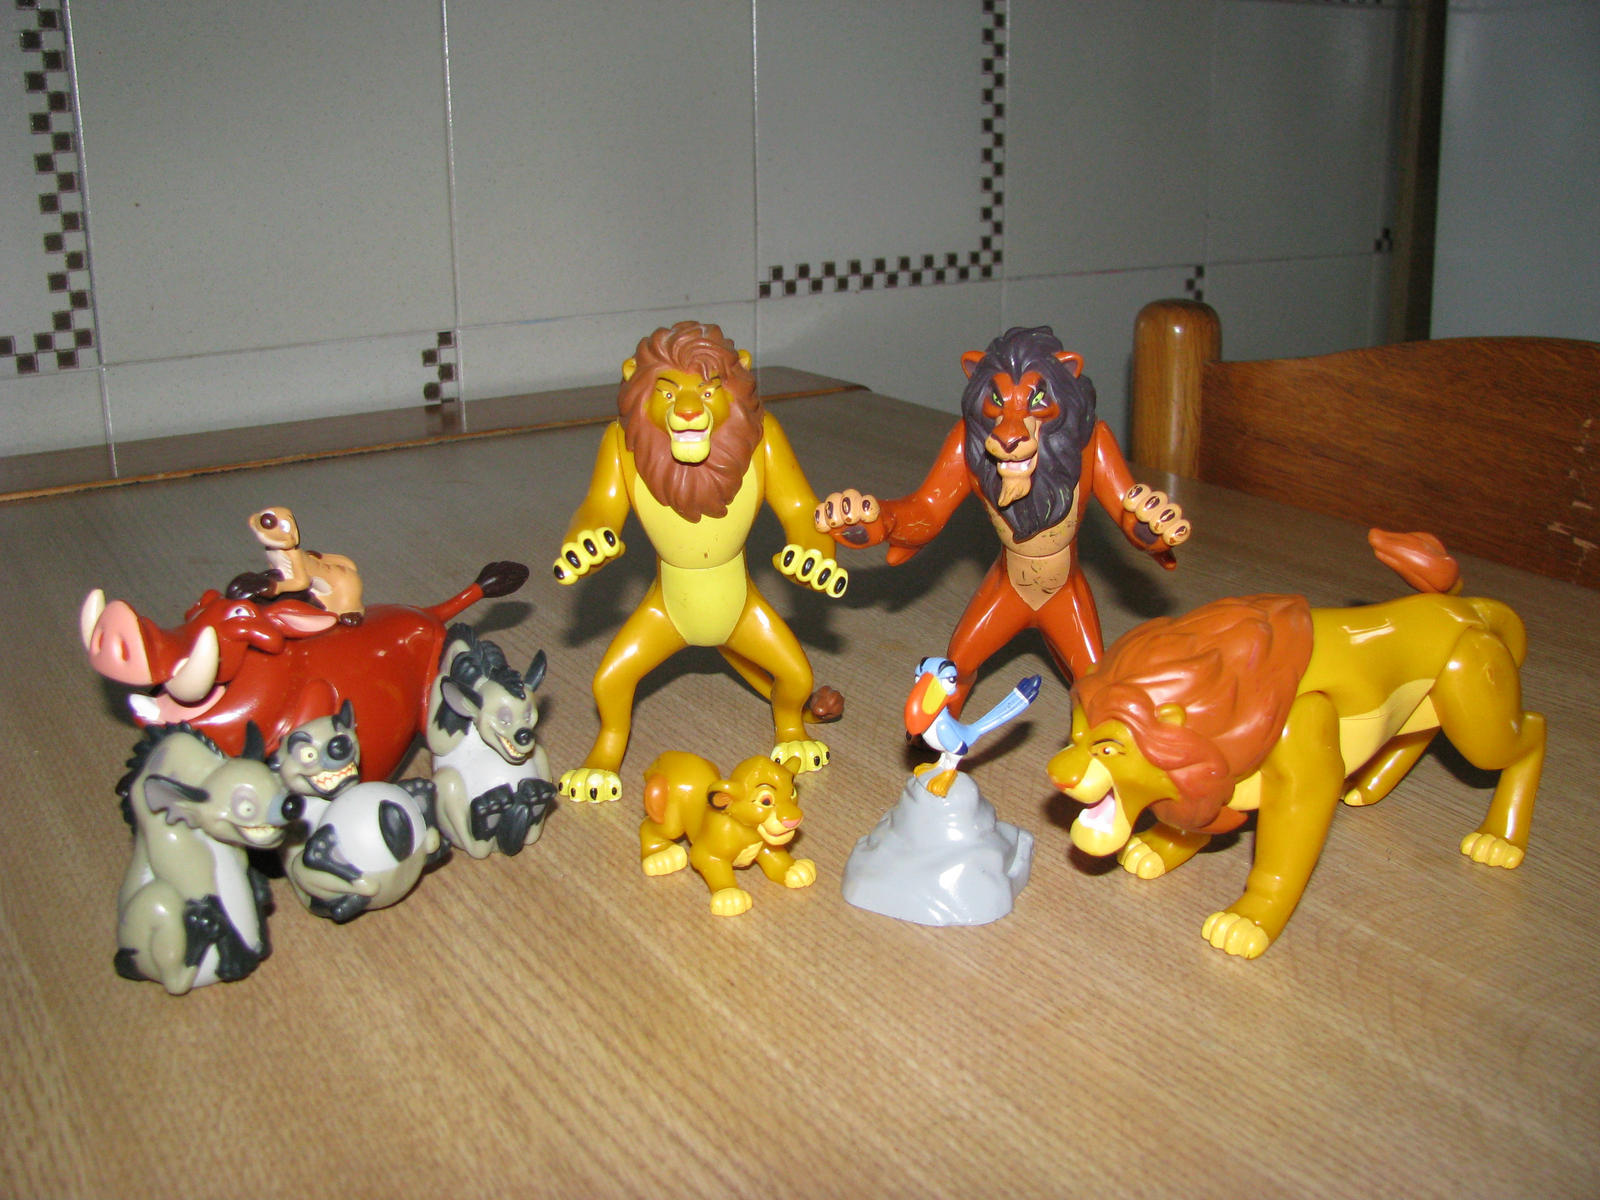 TLK collection: Hasbro Action Figures Complete Set by kary218